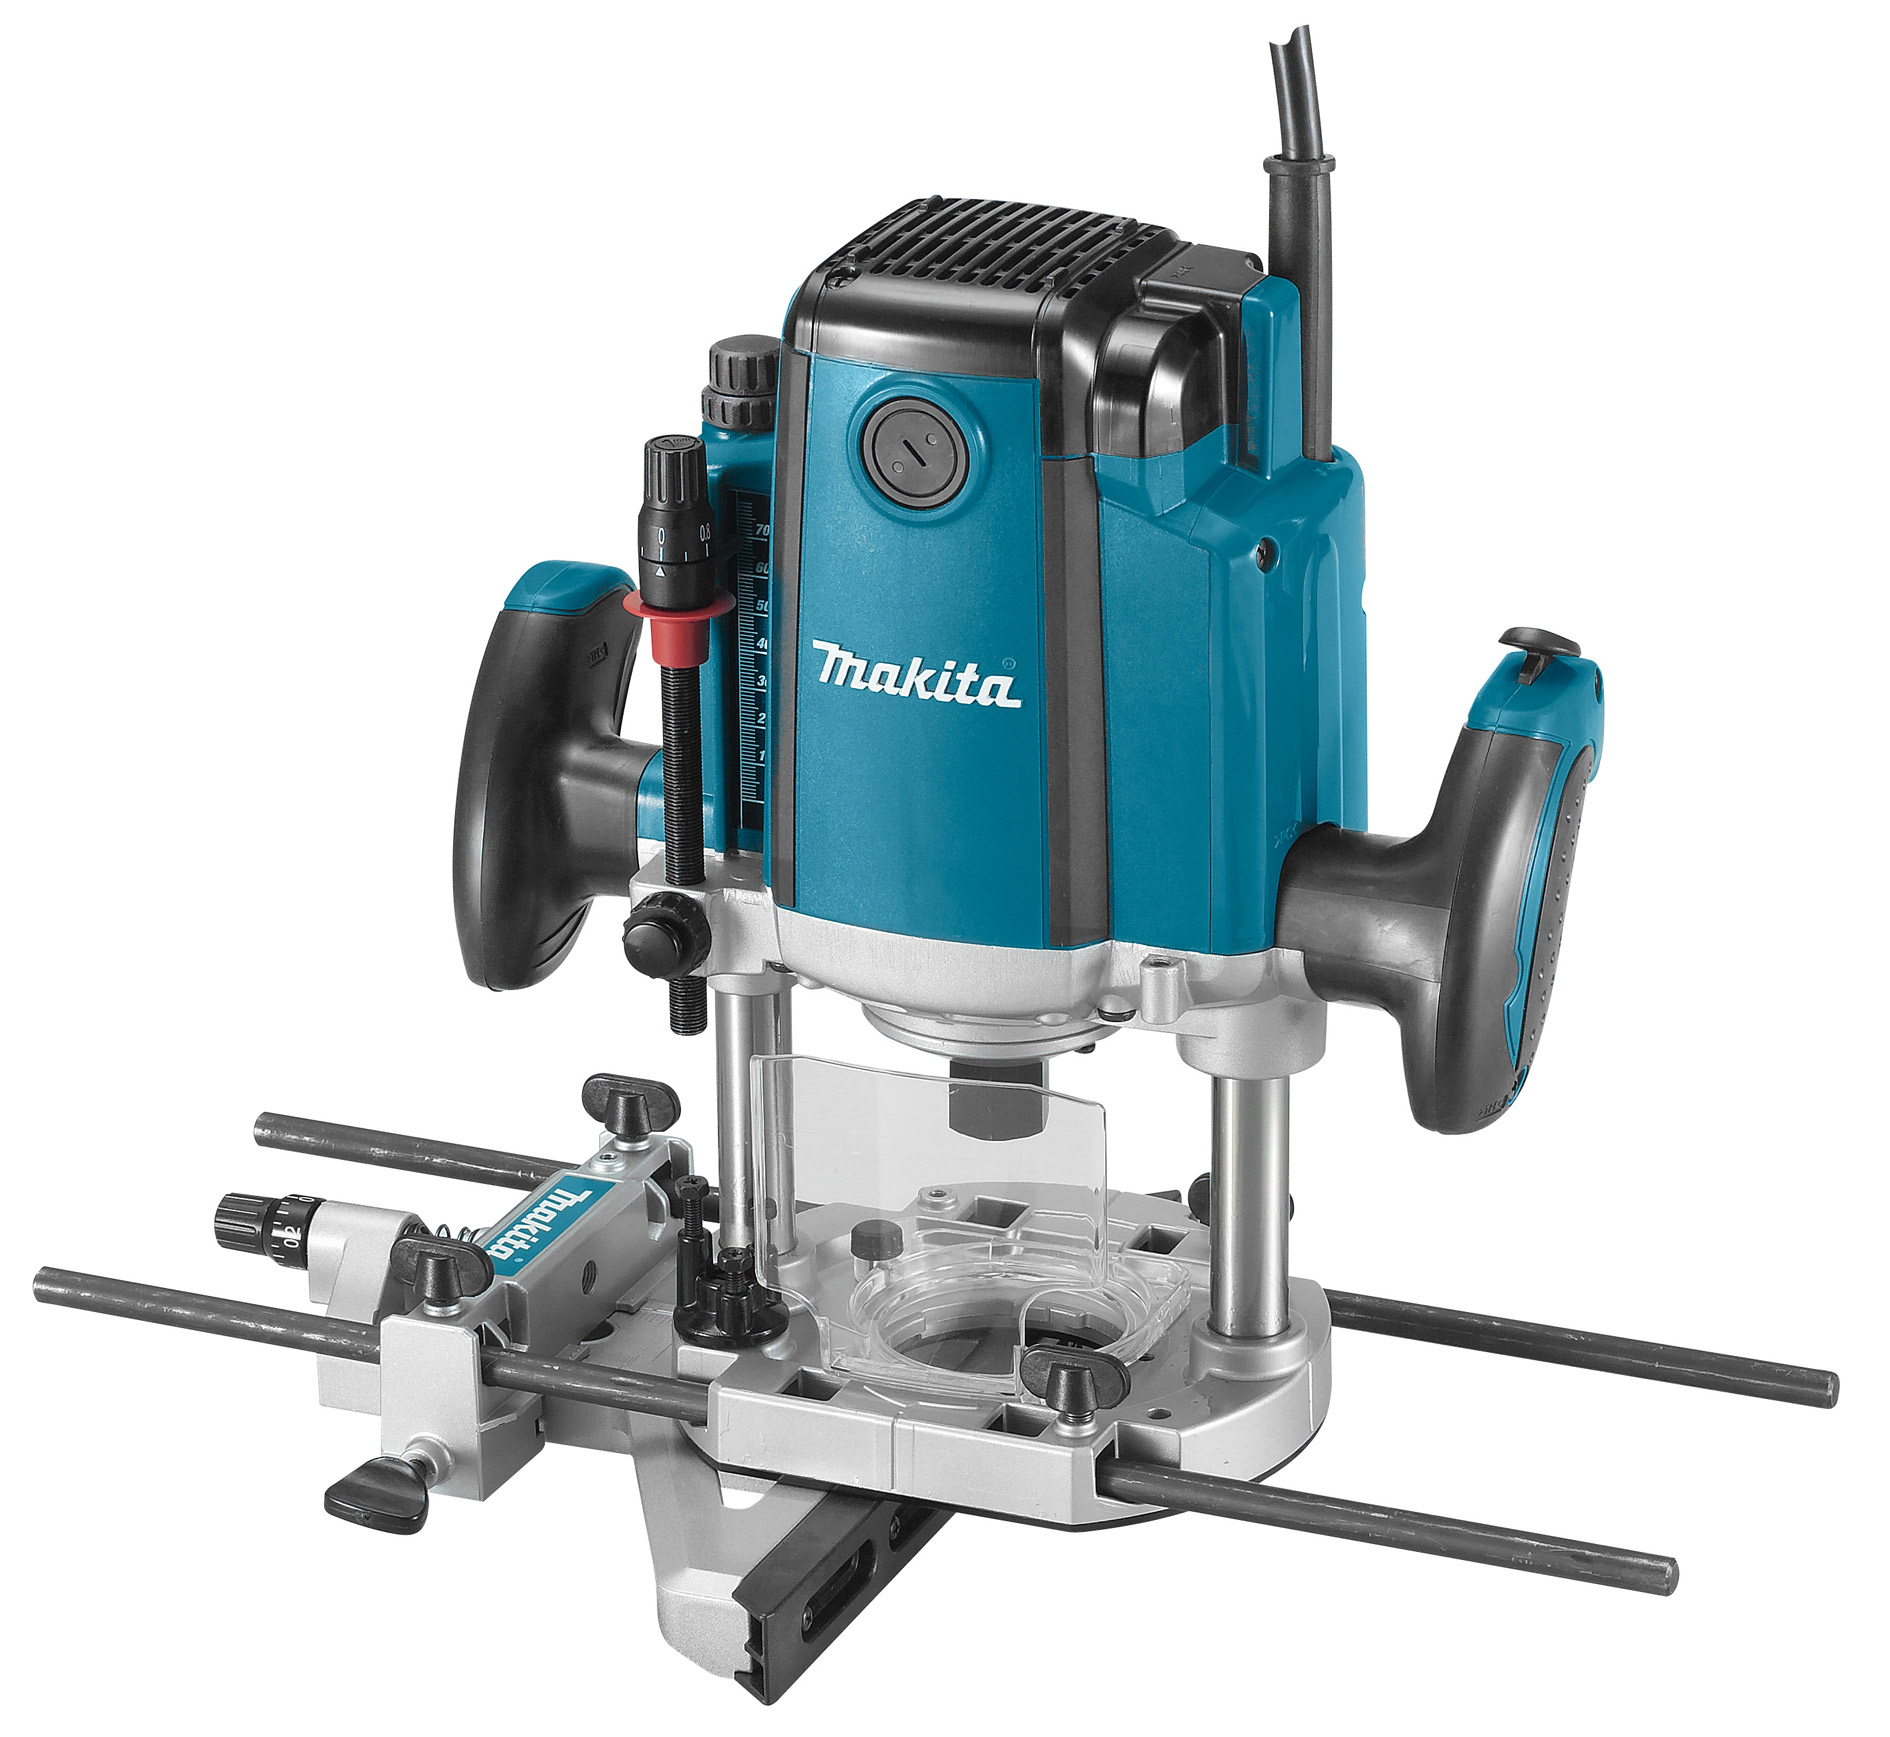 makita power tools south africa router rp1800x. Black Bedroom Furniture Sets. Home Design Ideas